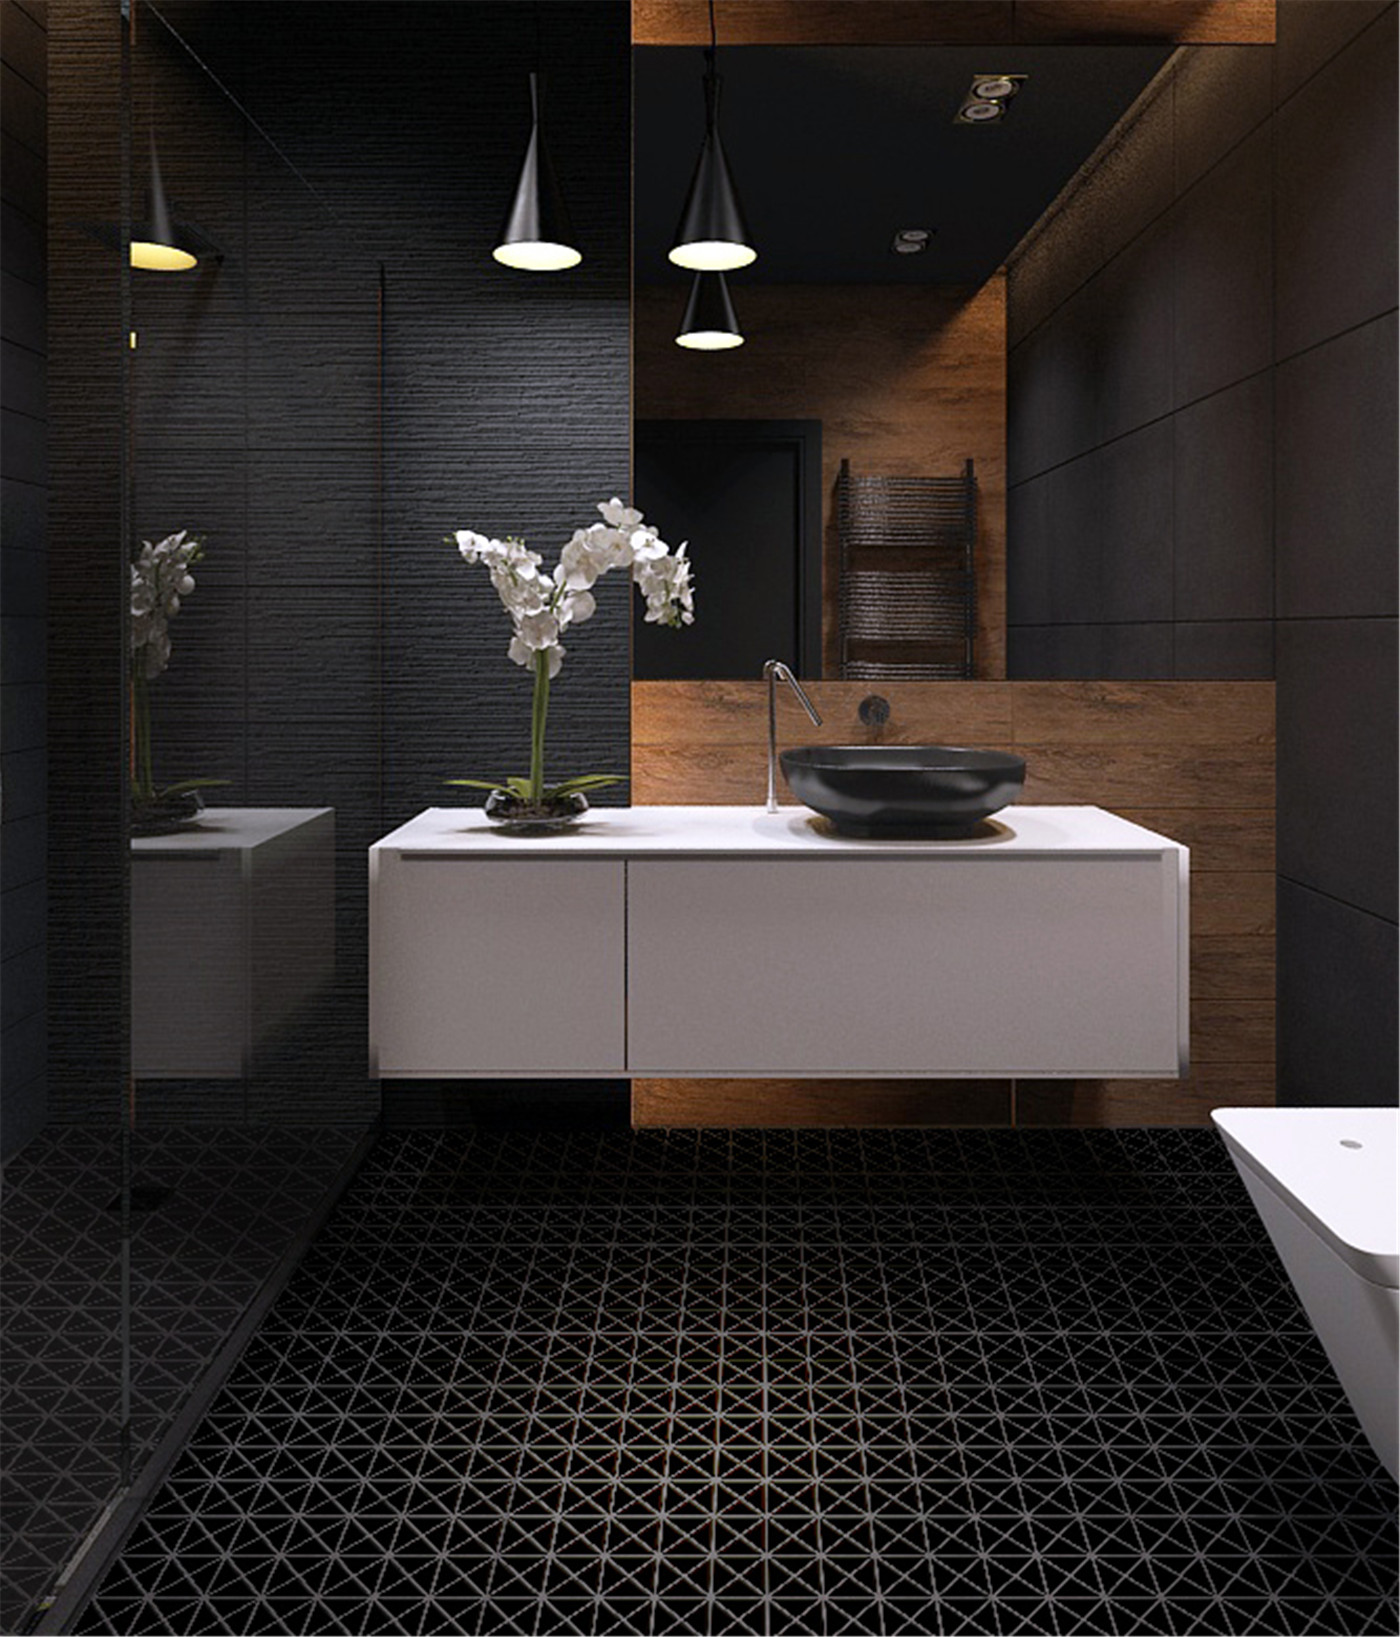 2 Pure Black Matte Porcelain Triangle Mosaic Floor Tile